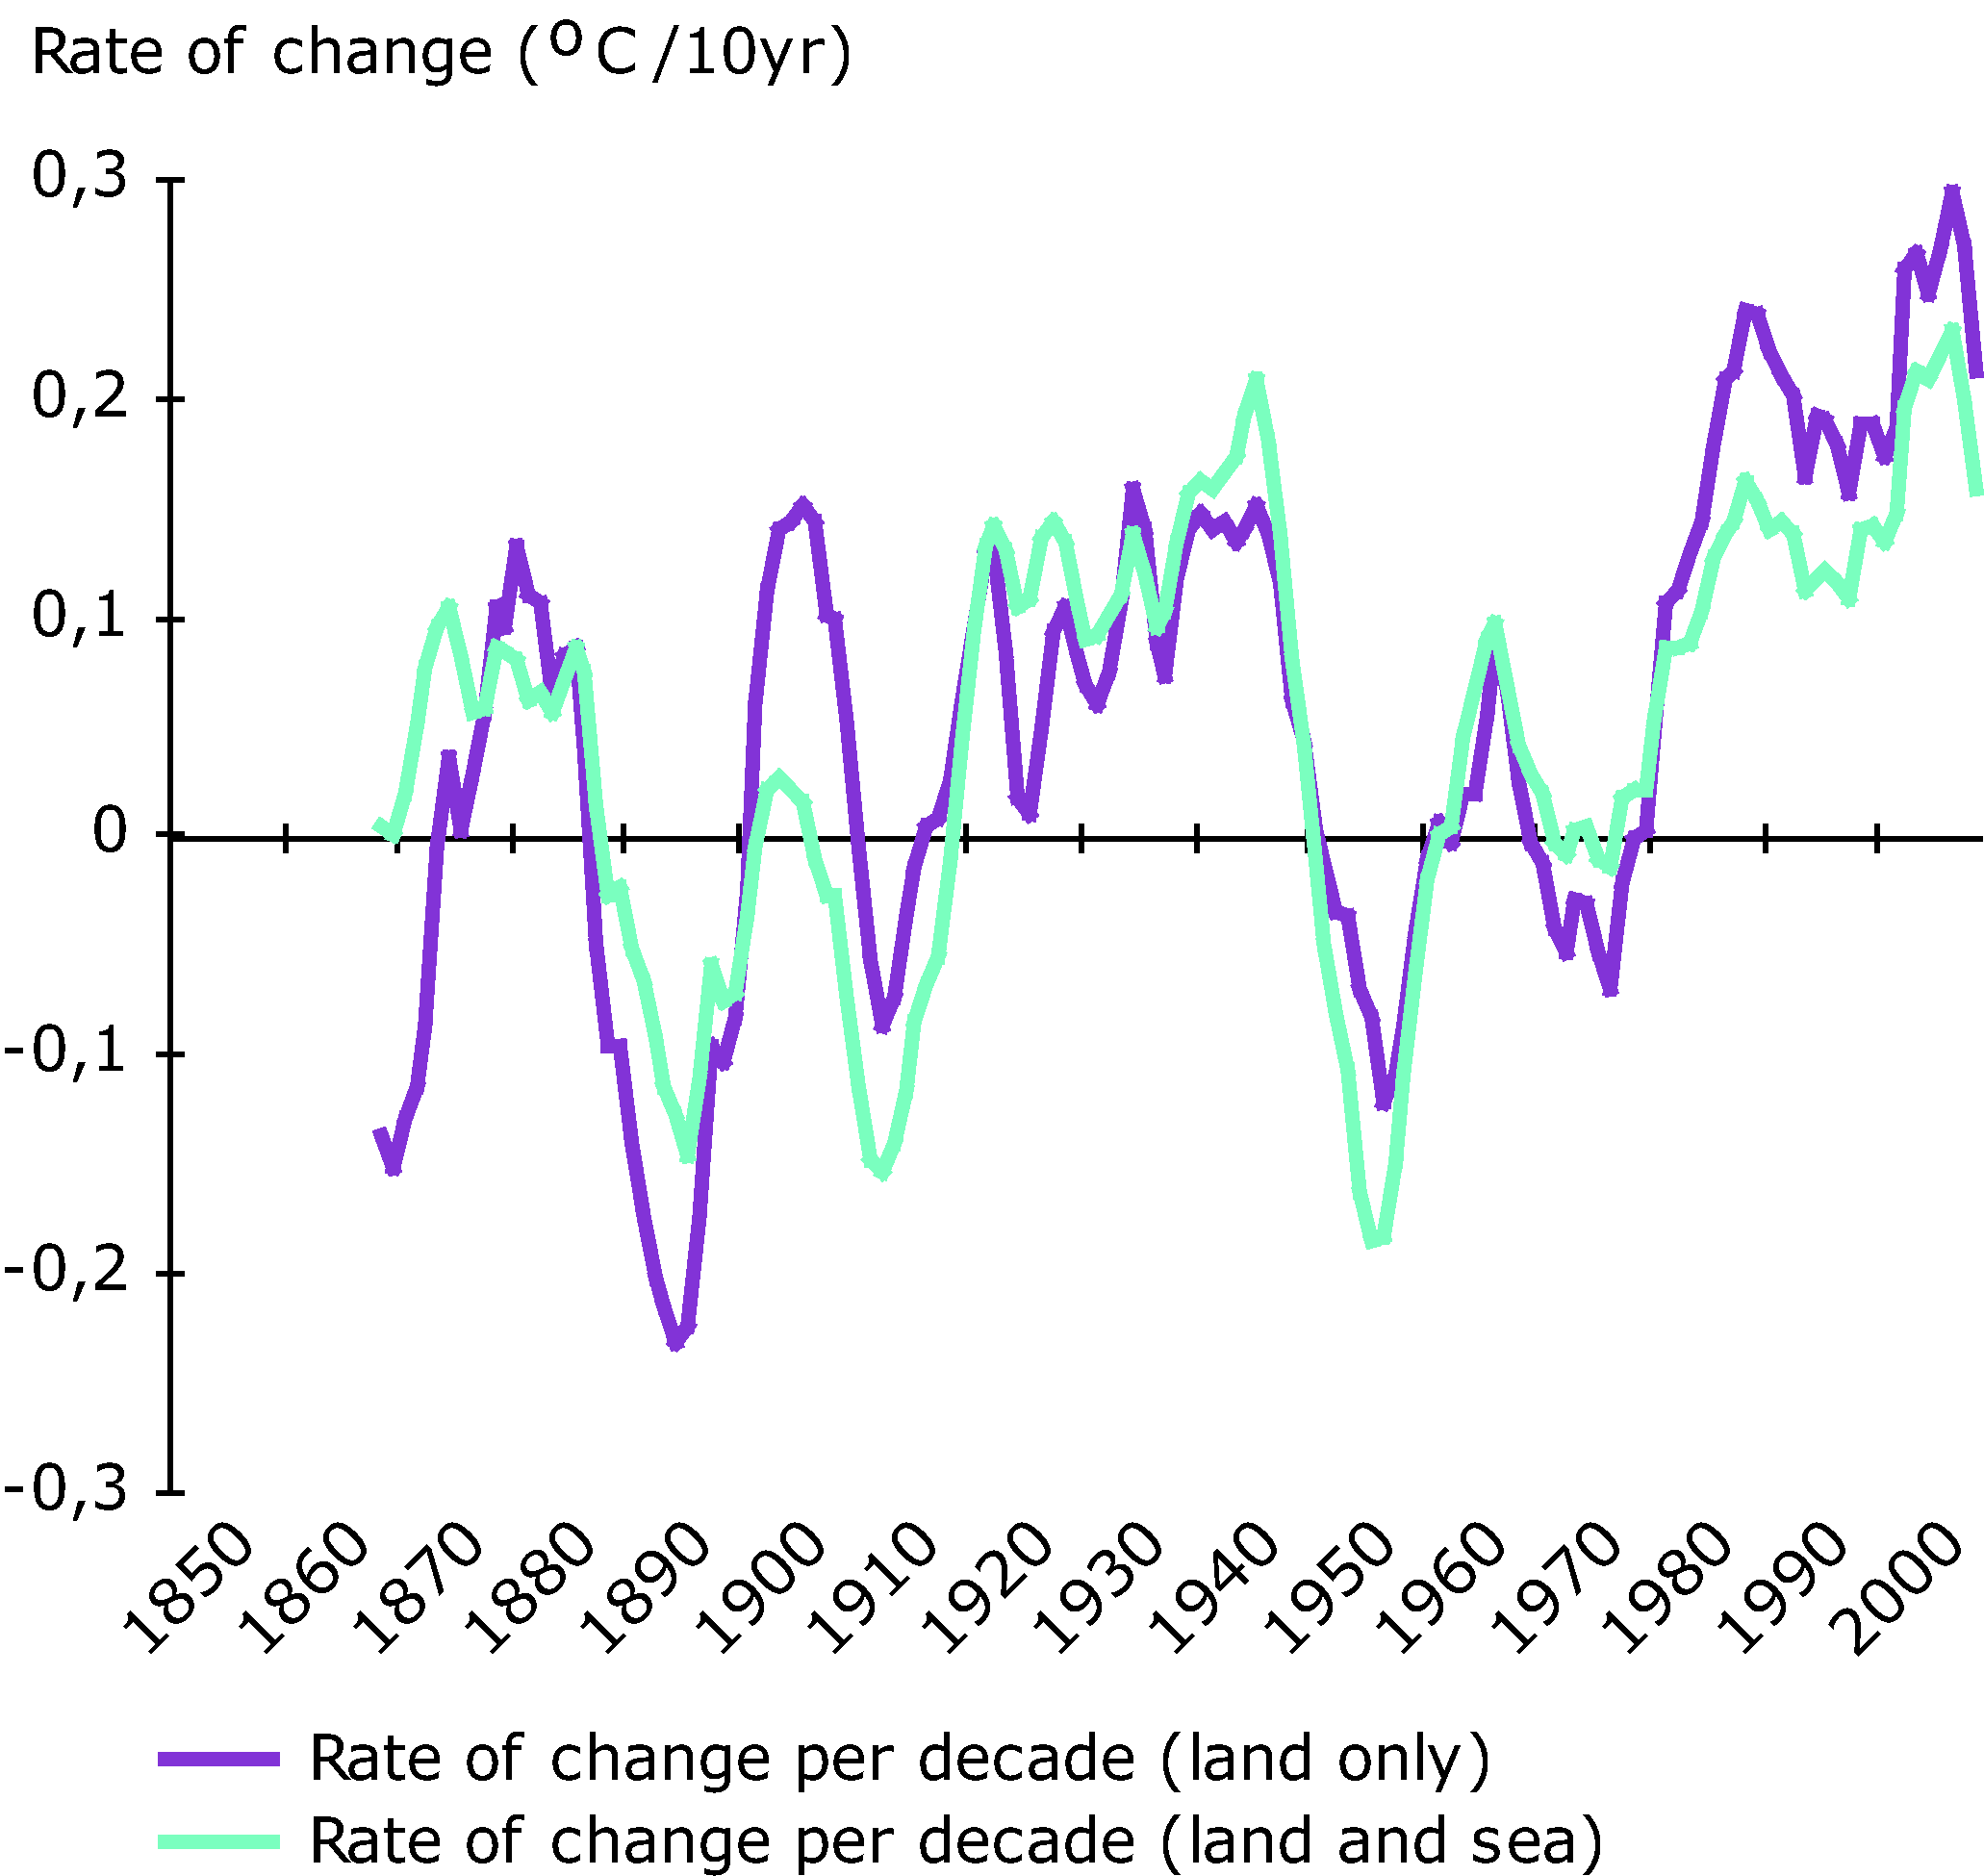 Rate of change of global average temperature, 1850-2008 (in oC per decade)